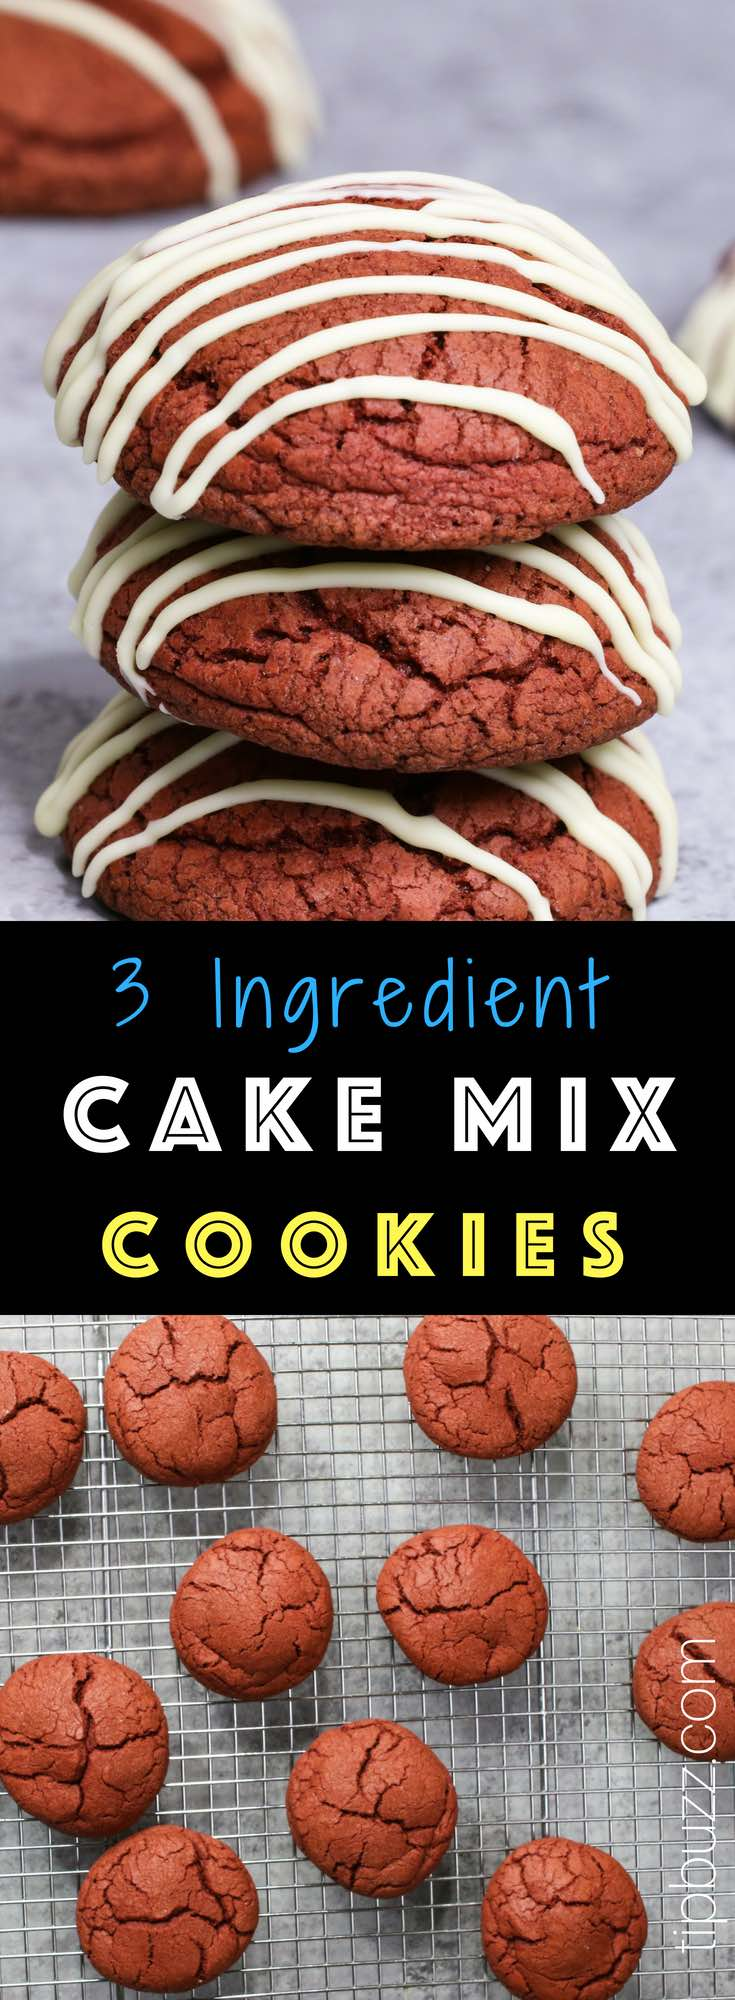 These Cake Mix Cookies are soft, moist and so delicious! You only need 3 ingredients to make them and nobody will know you used a cake mix. There are endless flavor combinations that make them so much fun for a party!#CakeMixCookies